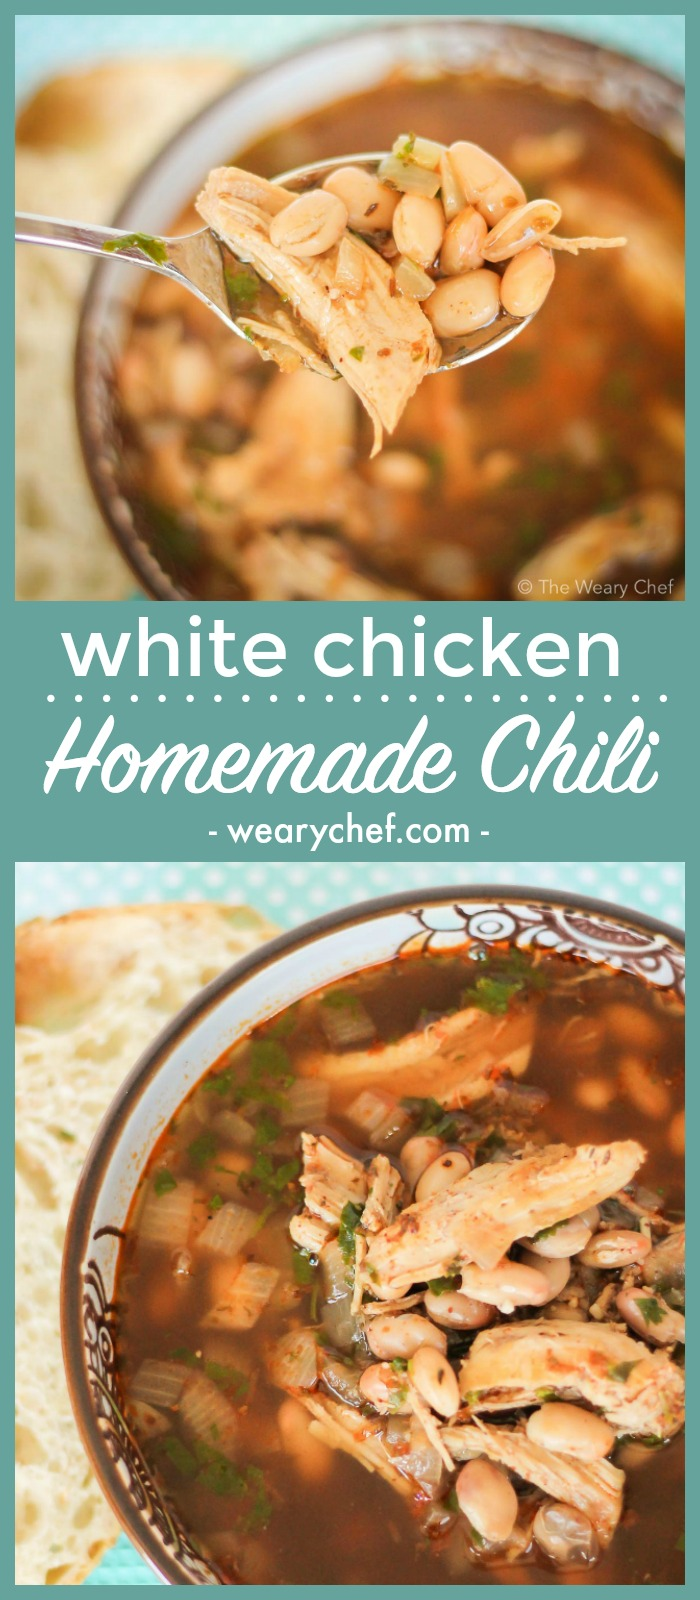 This easy, flavorful white chicken chili recipe has been a favorite soup recipe at our house for years!